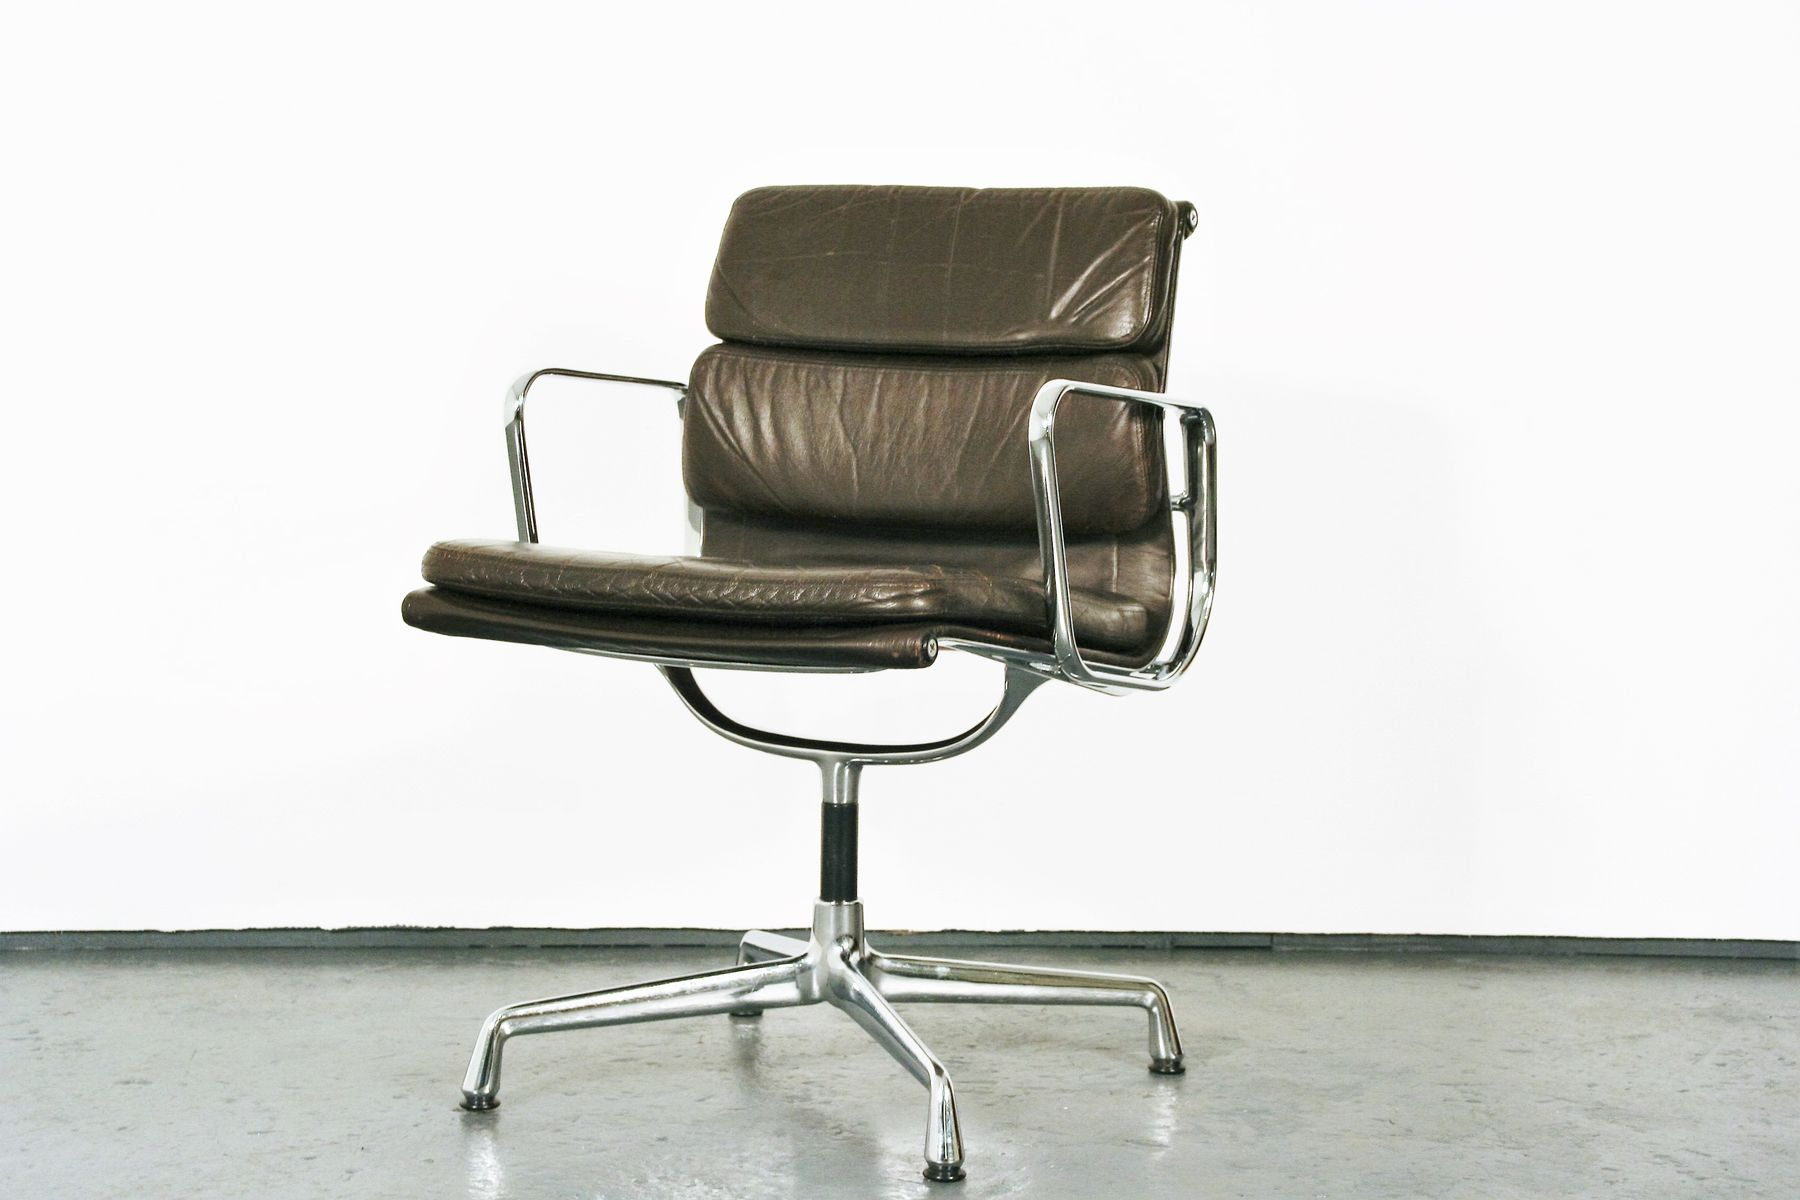 mid century ea207 soft pad chair by charles eames for. Black Bedroom Furniture Sets. Home Design Ideas